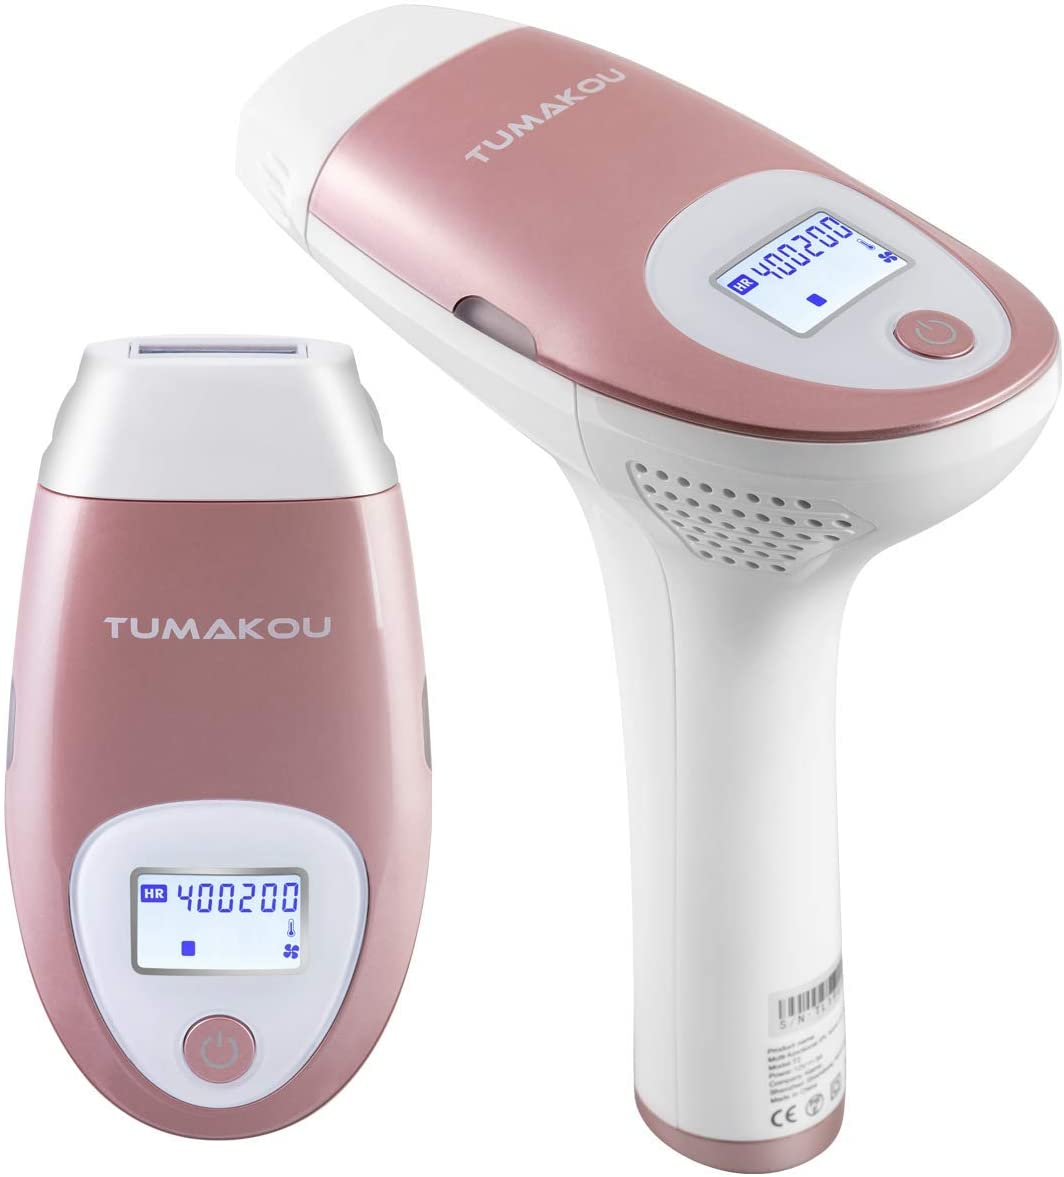 IPL Hair Removal System - TUMAKOU-T2 Painless IPL Hair Removal Device for Women & Man - 400000 Flashes Epilator - Permanent Results on Face and Body